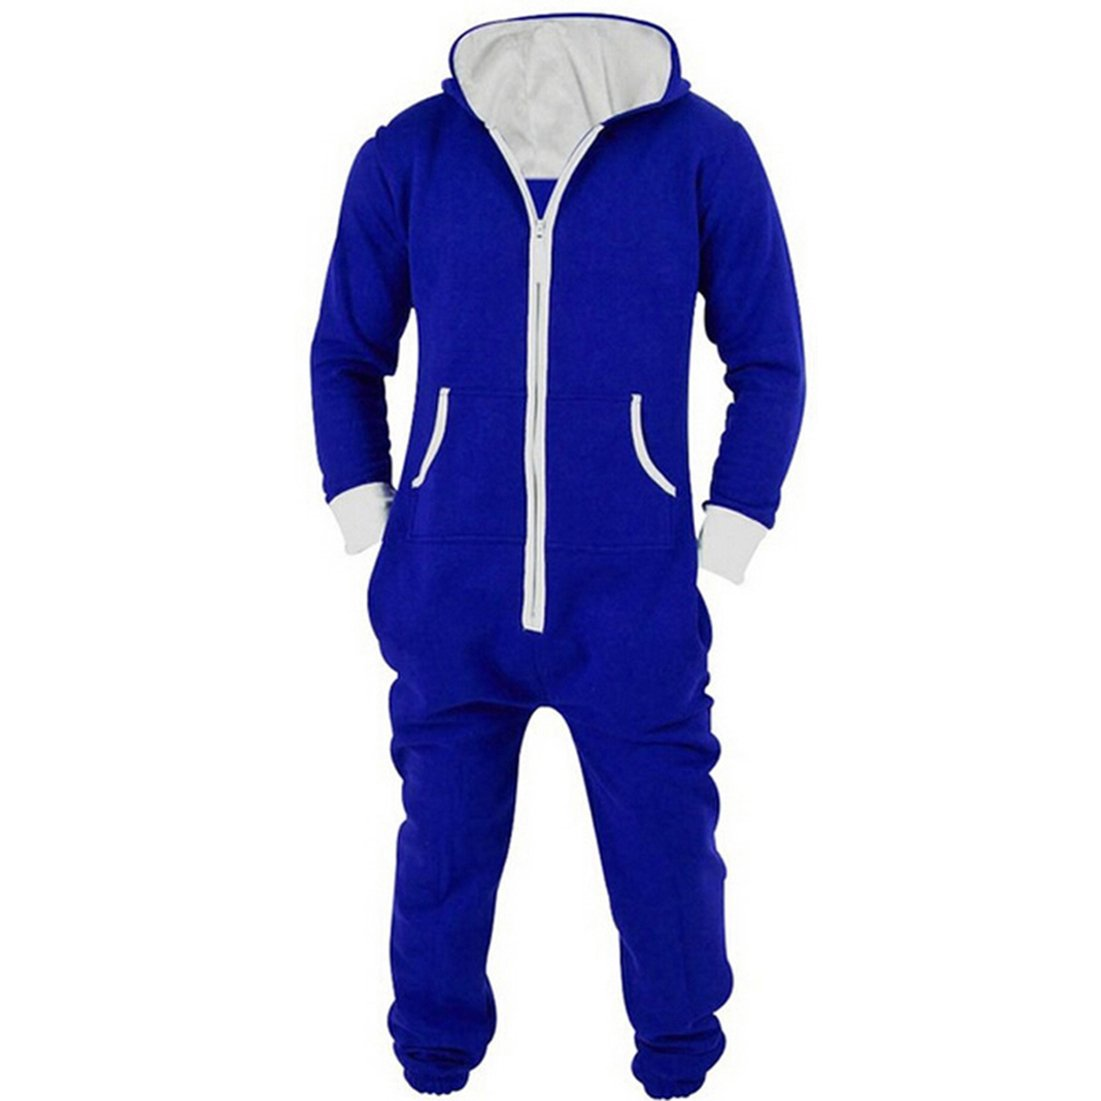 HDH Unisex Onesies Full Zip Up All In One Hooded Jumpsuit Playsuit Brushed For Men Women